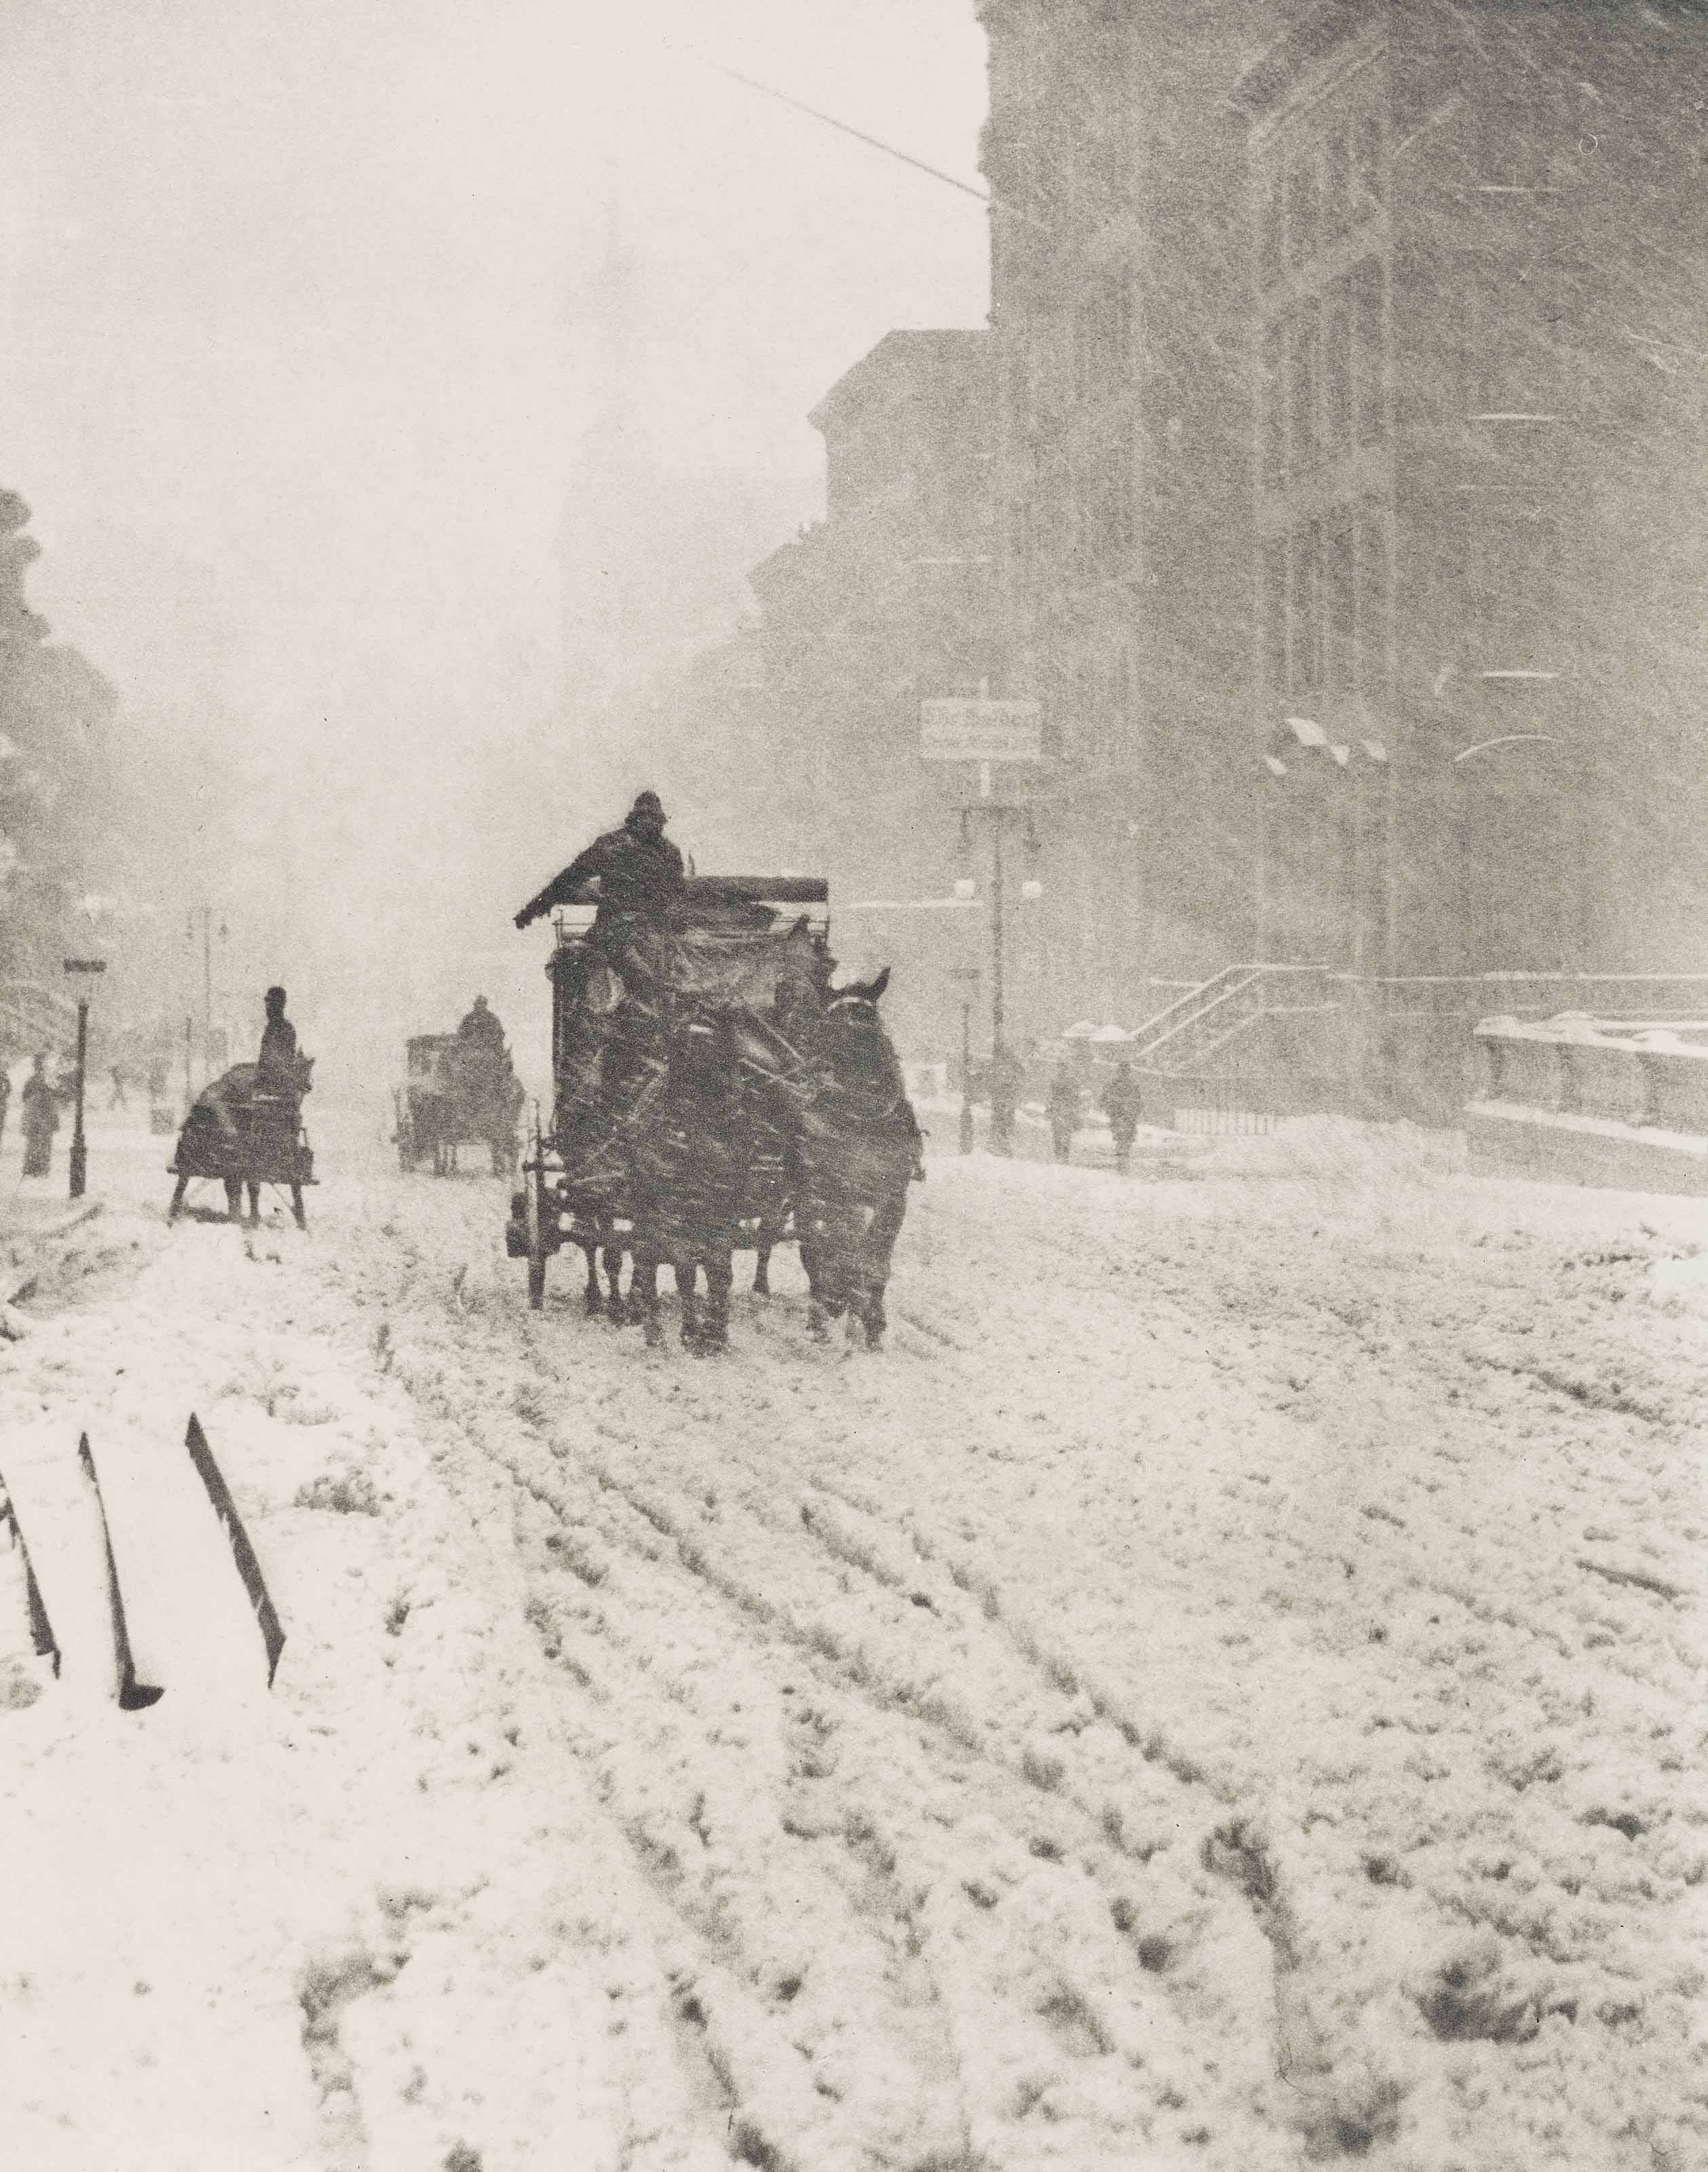 Winter - Fifth Avenue, 1893